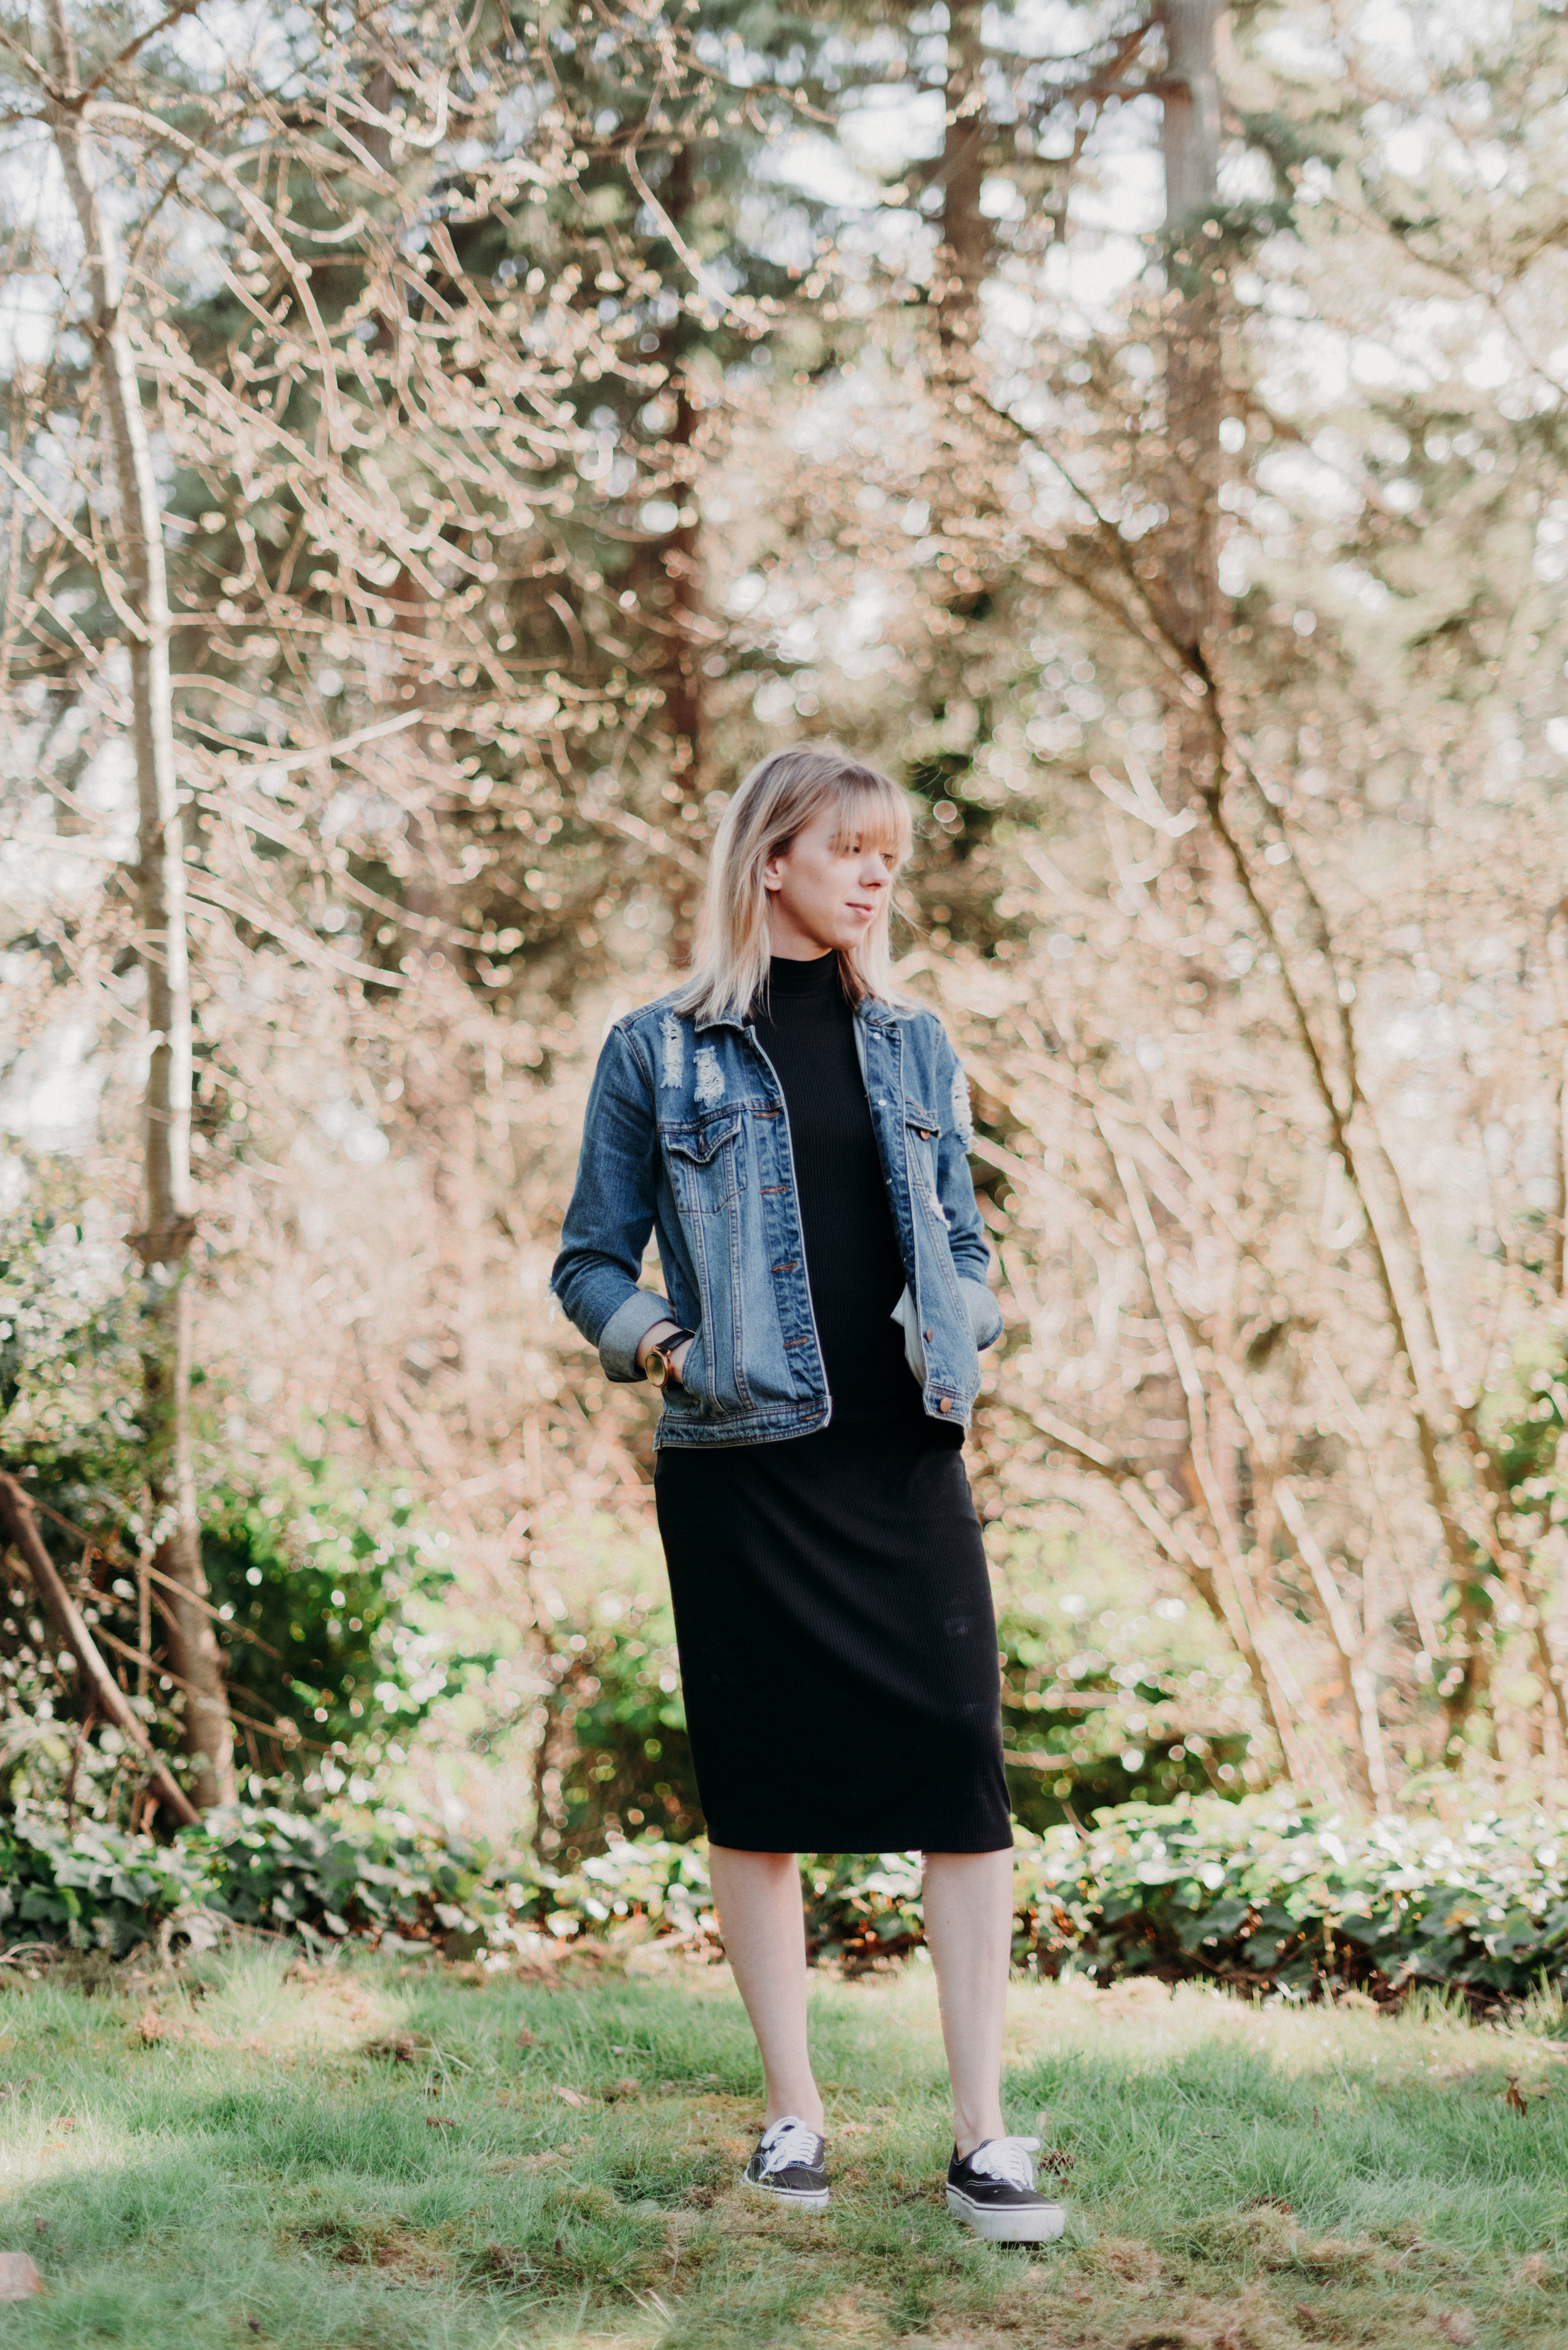 Brooke Summers Photography | 5 Ways to Wear That Black Dress in Your Closet